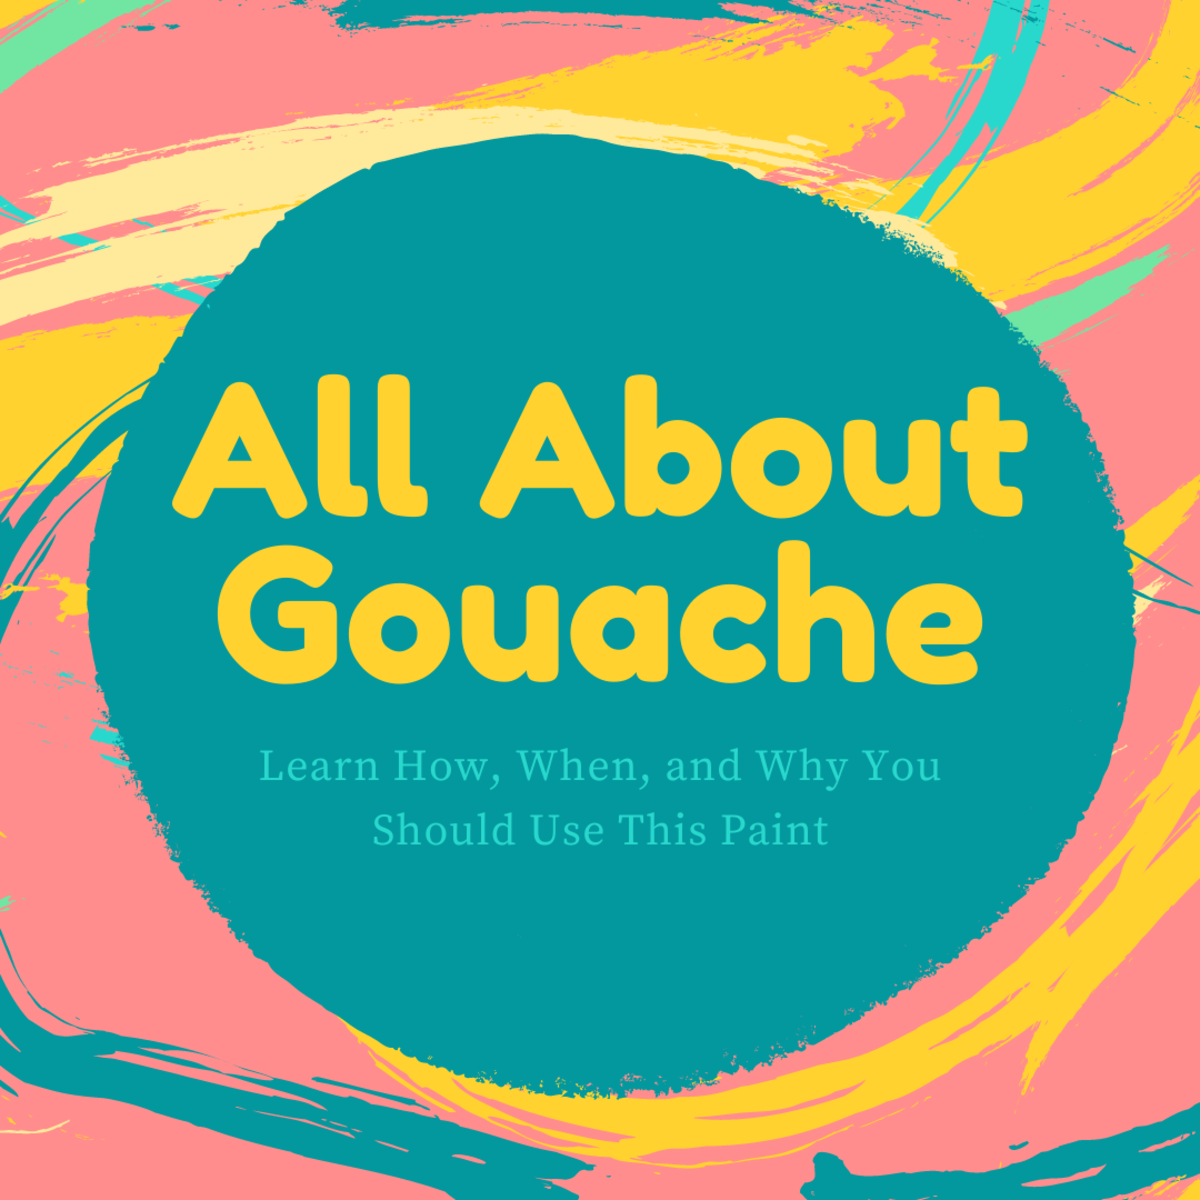 Learn what gouache is, how it's different from other paints, its features, when and when you should use it, and so much more.